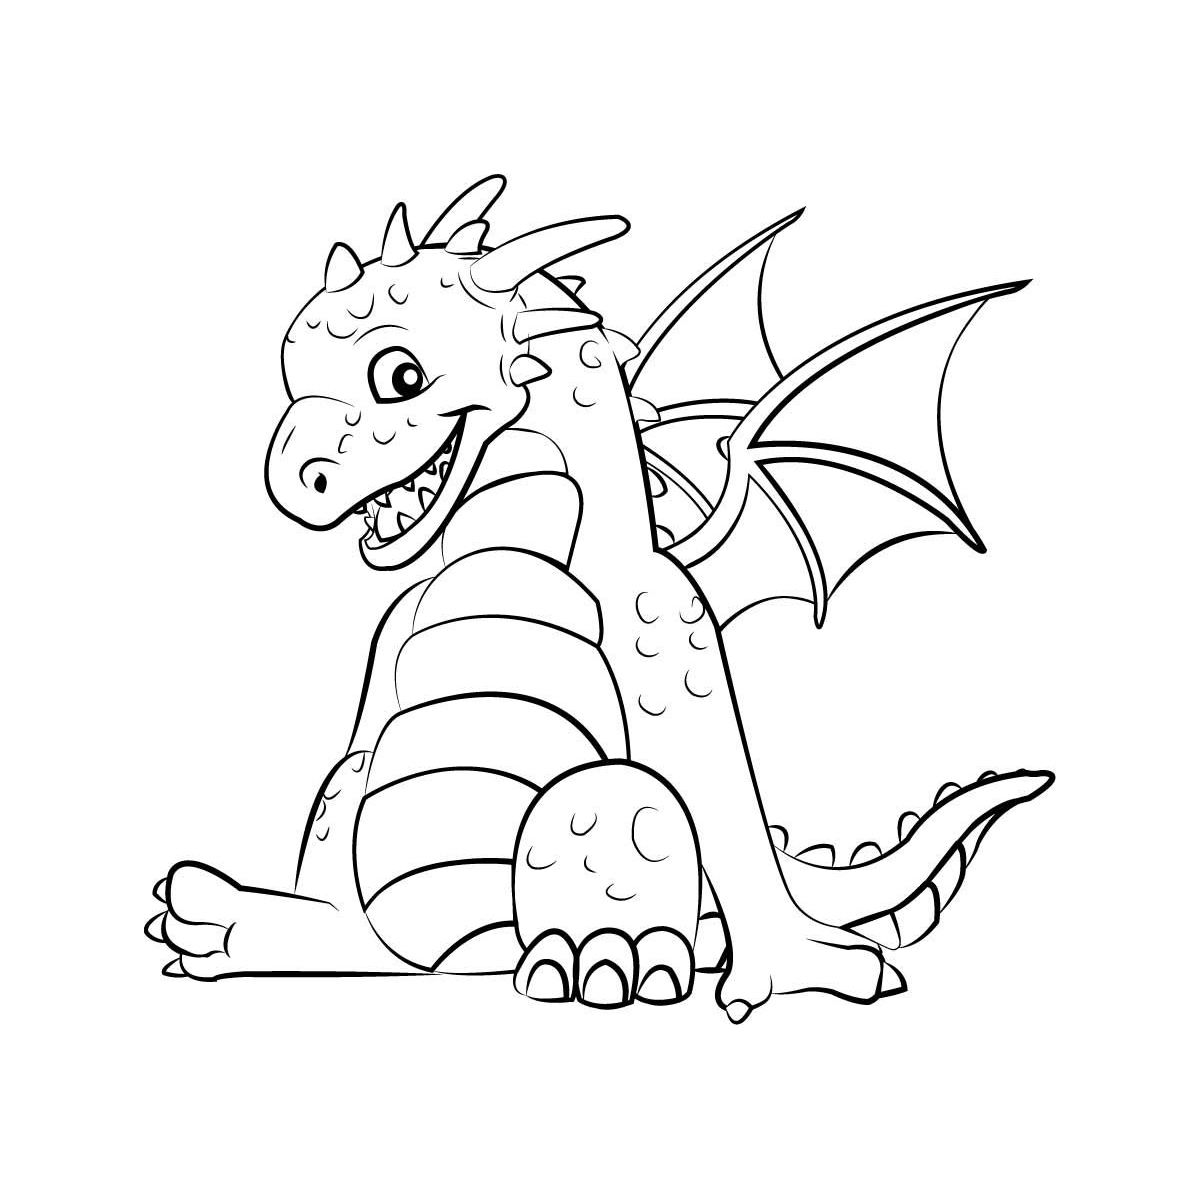 dragon images for kids dragon coloring pages 360coloringpages images for kids dragon